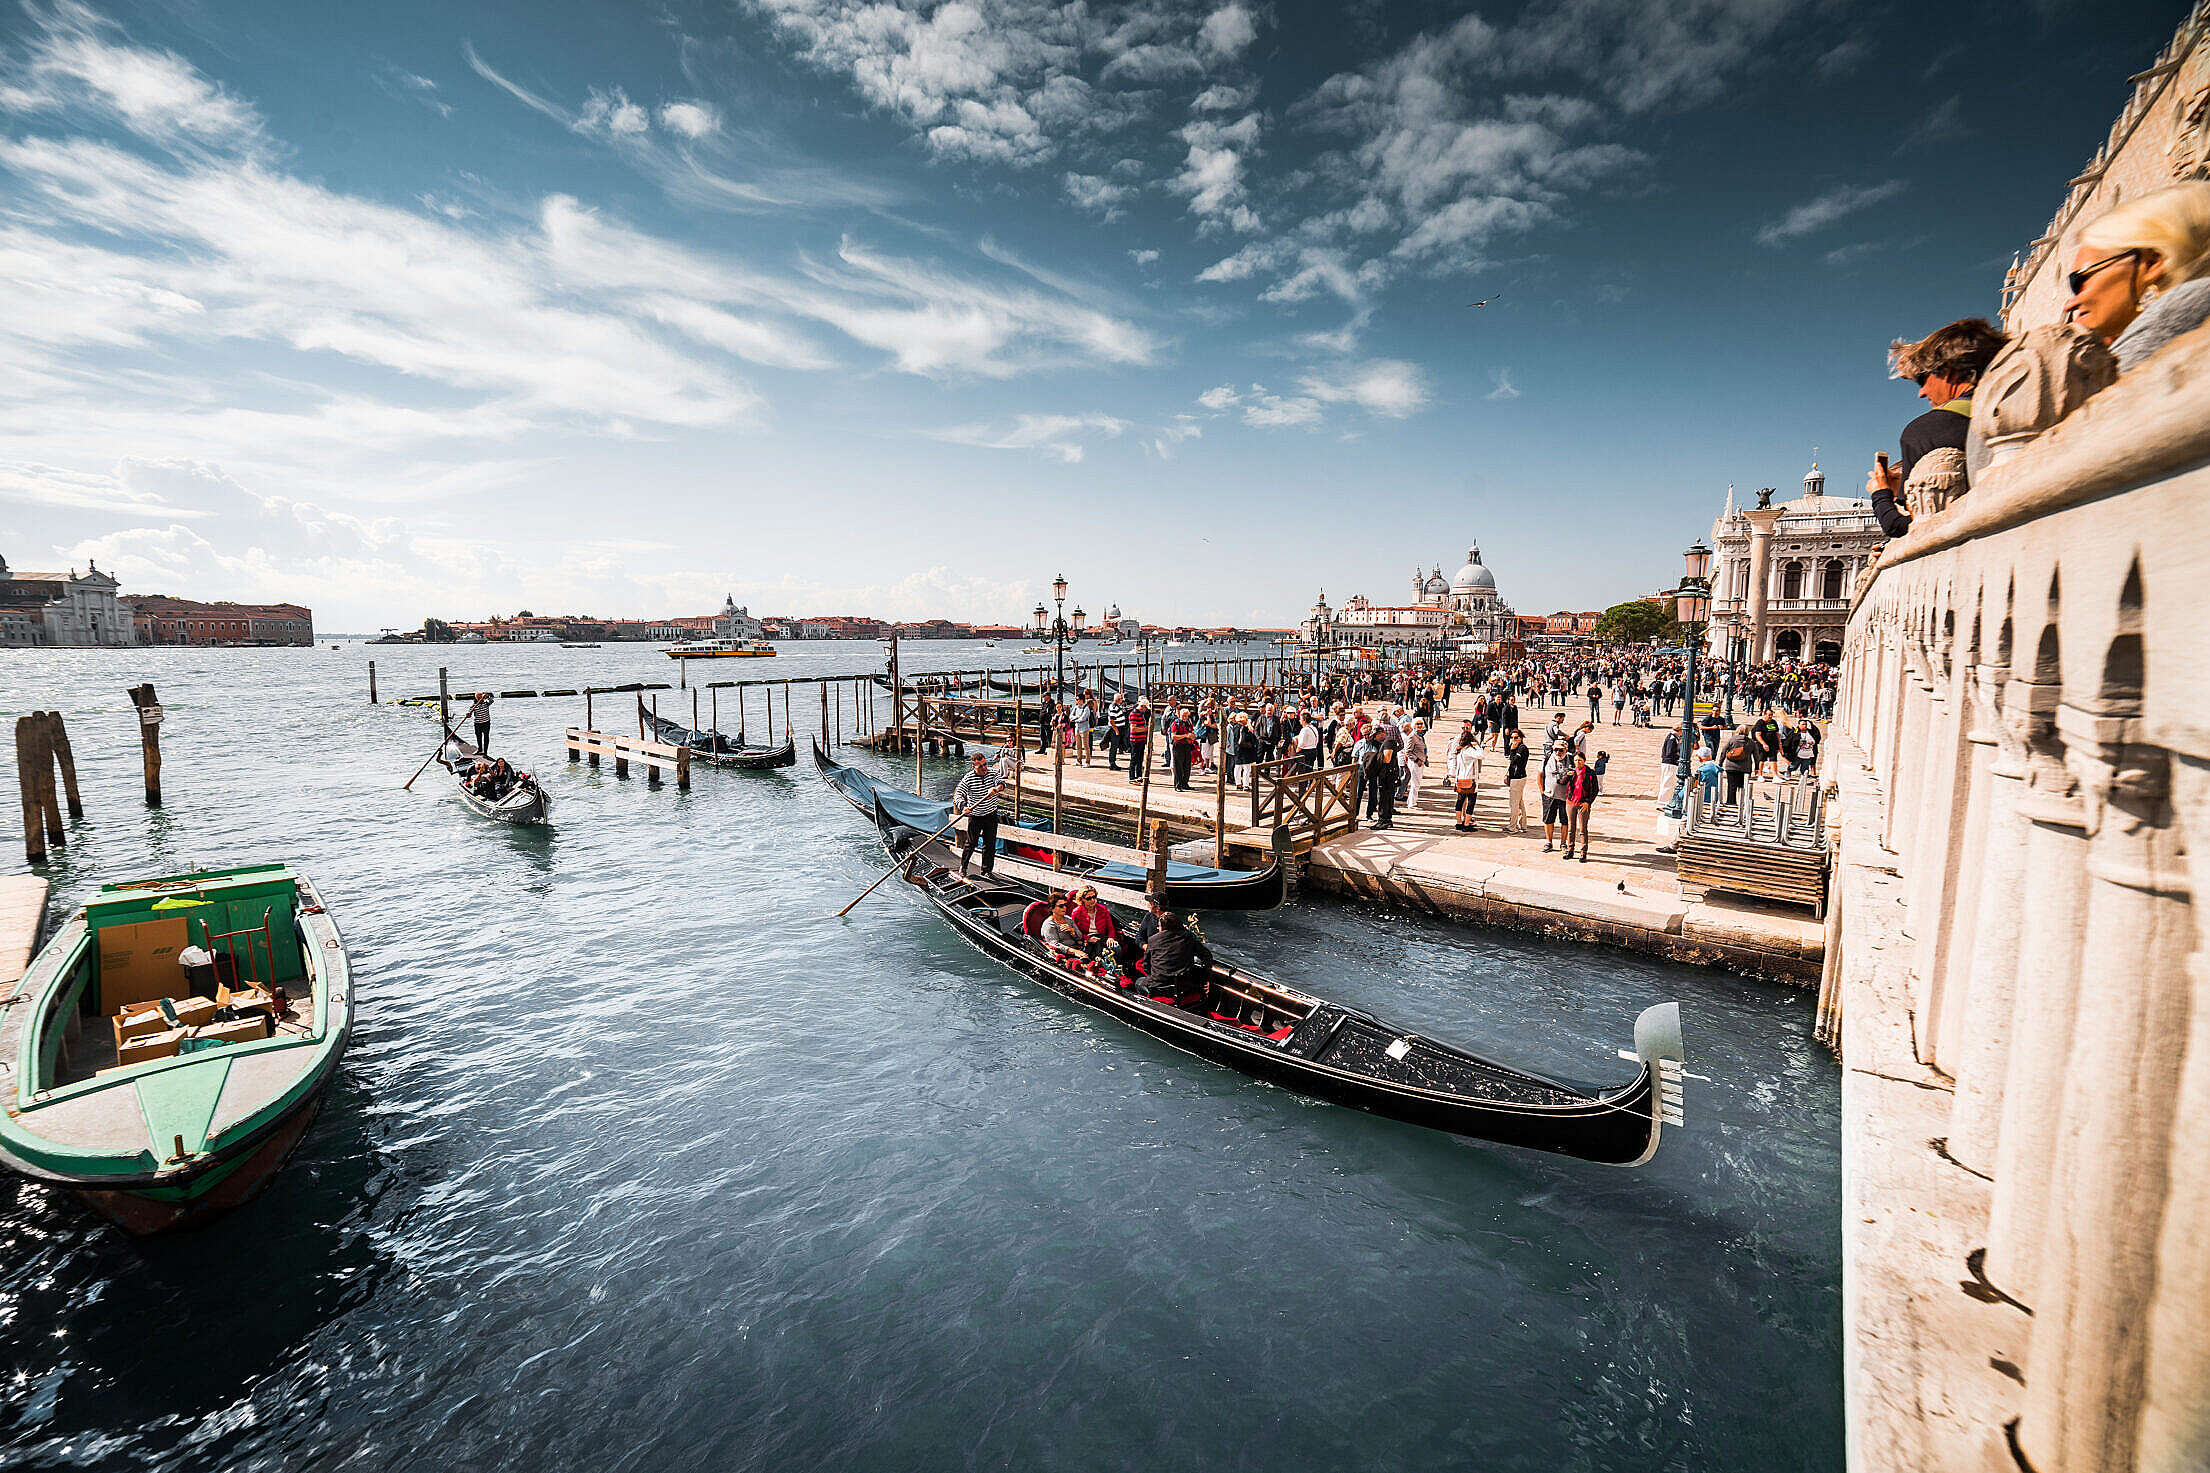 (click to download) Venice Gondolas FREE Stock Photo